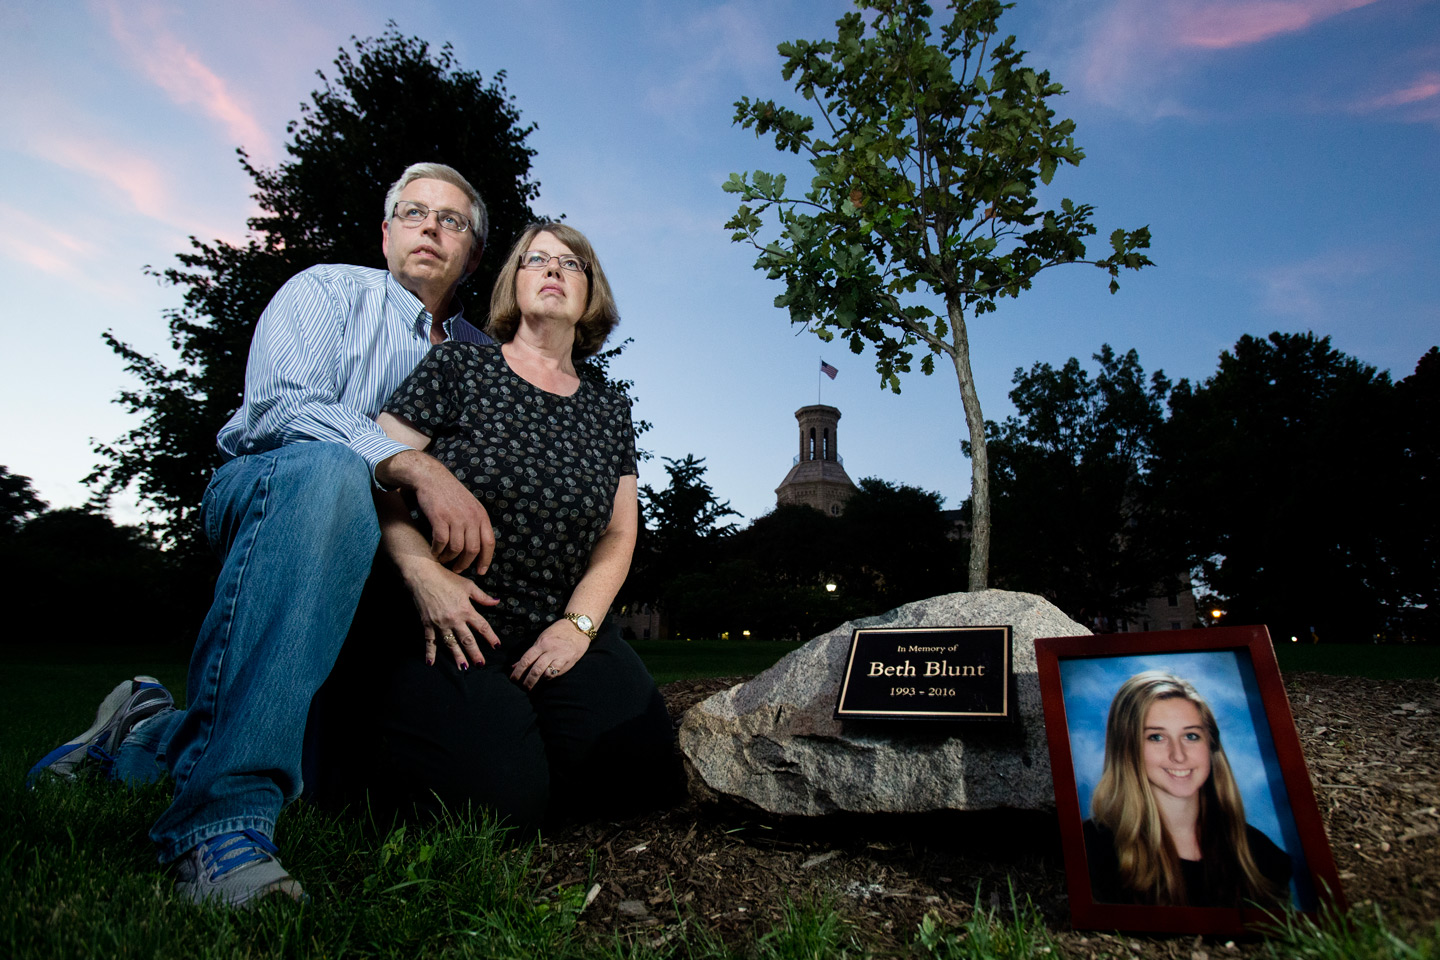 Lisa and Terry Blunt say that when their 22-year-old daughter, Beth, lost her battle with addiction, it was important to share that in her obituary to create awareness about the heroin crisis in America.